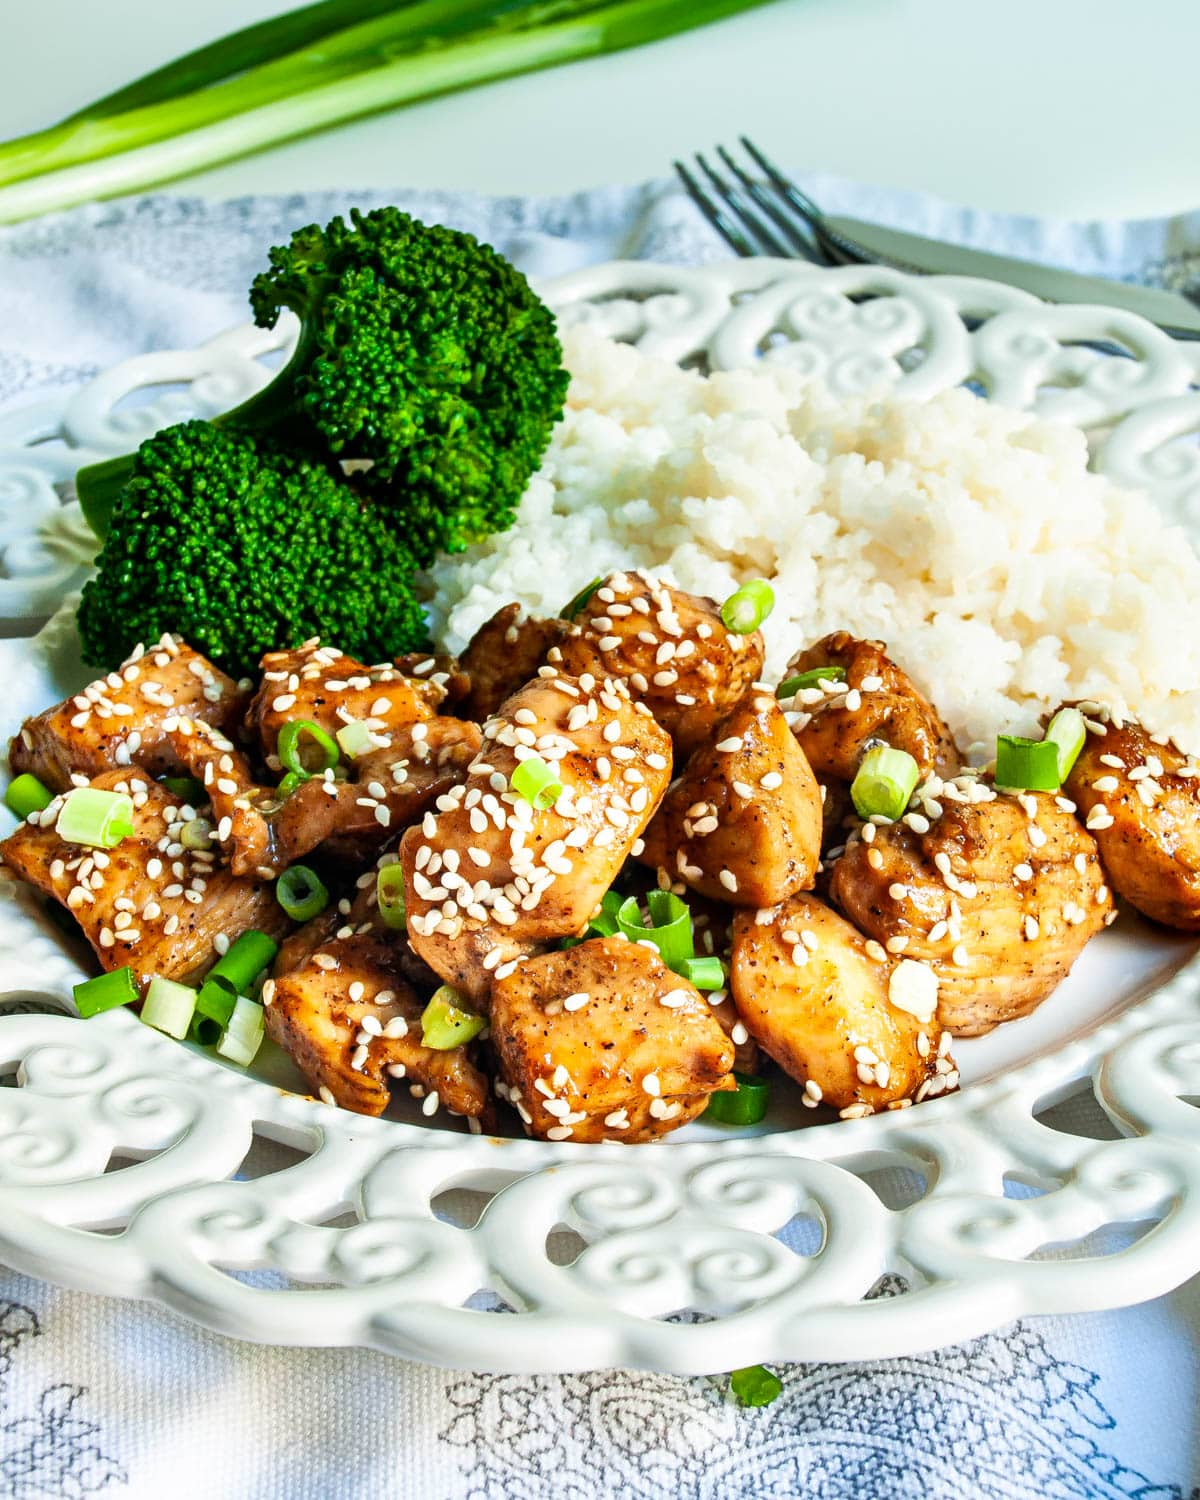 chicken teriyaki with rice and broccoli on a white plate